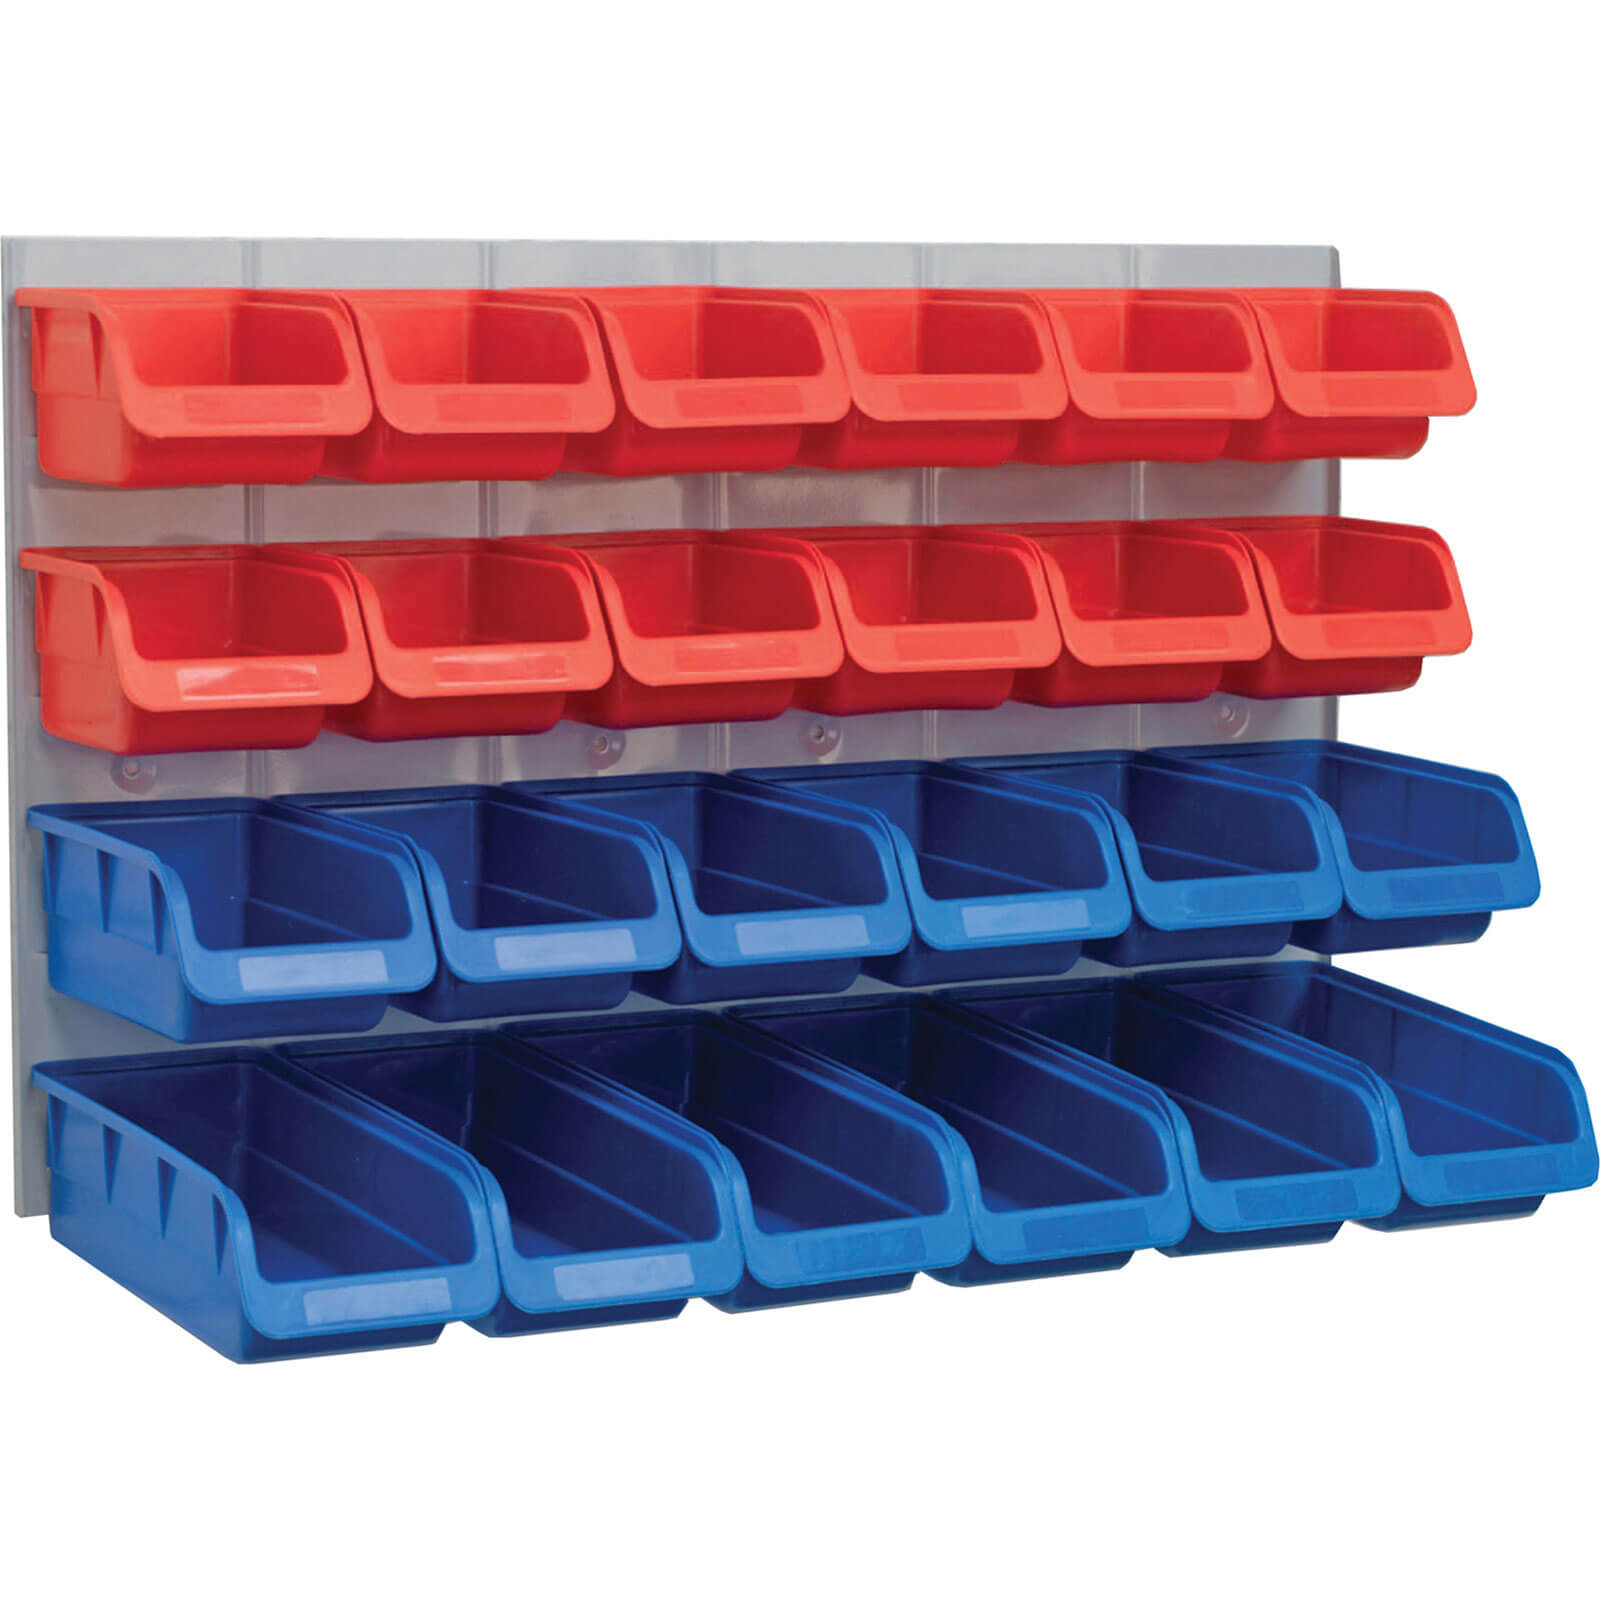 Faithfull 24 Piece Plastic Storage Bin Set with Metal Wall Panel